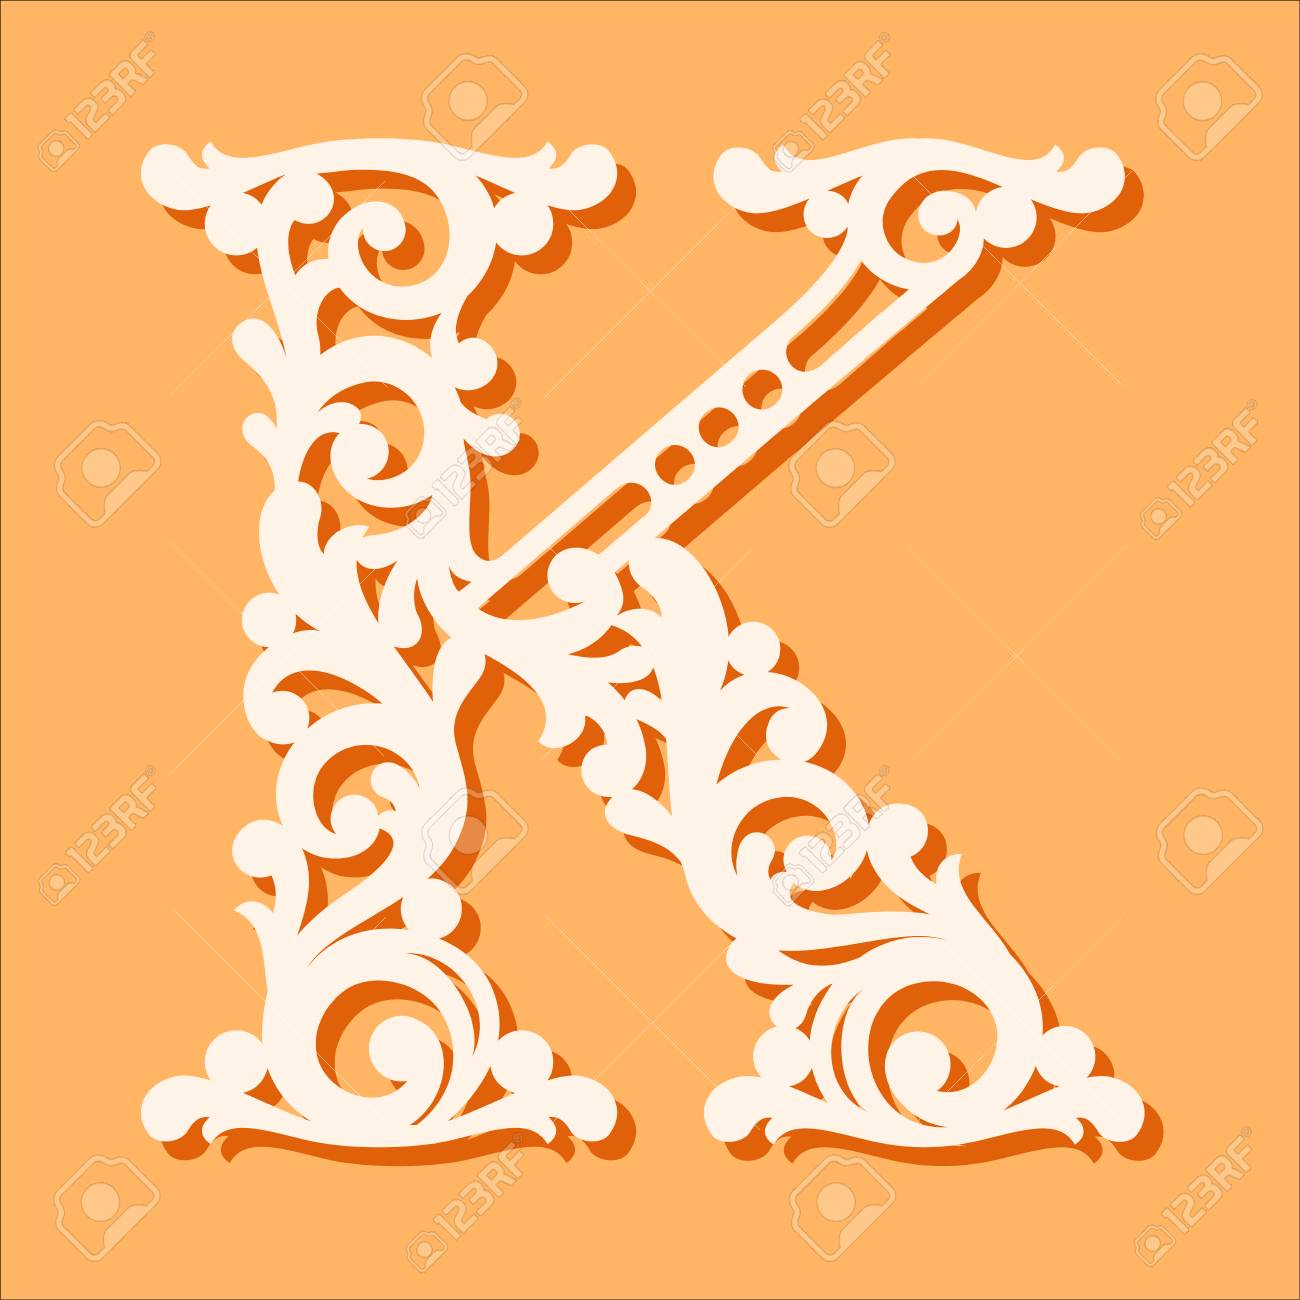 fancy letter s template  Stock Photo